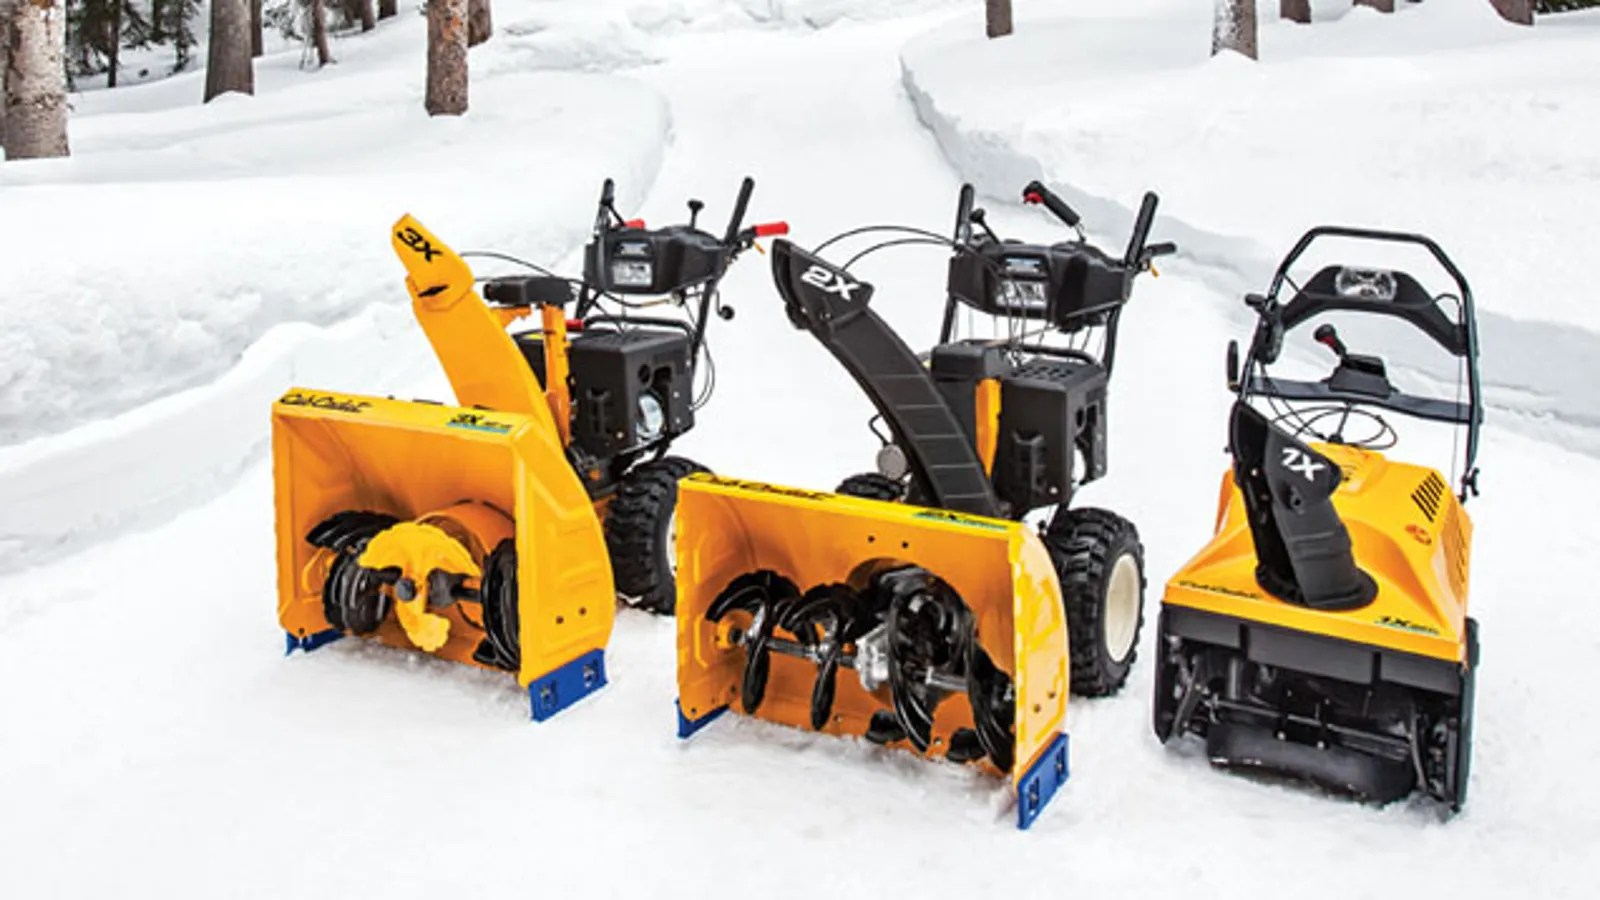 Used Snow Blowers How To Decide Between A Single Stage Or Two Stage Snow Blower